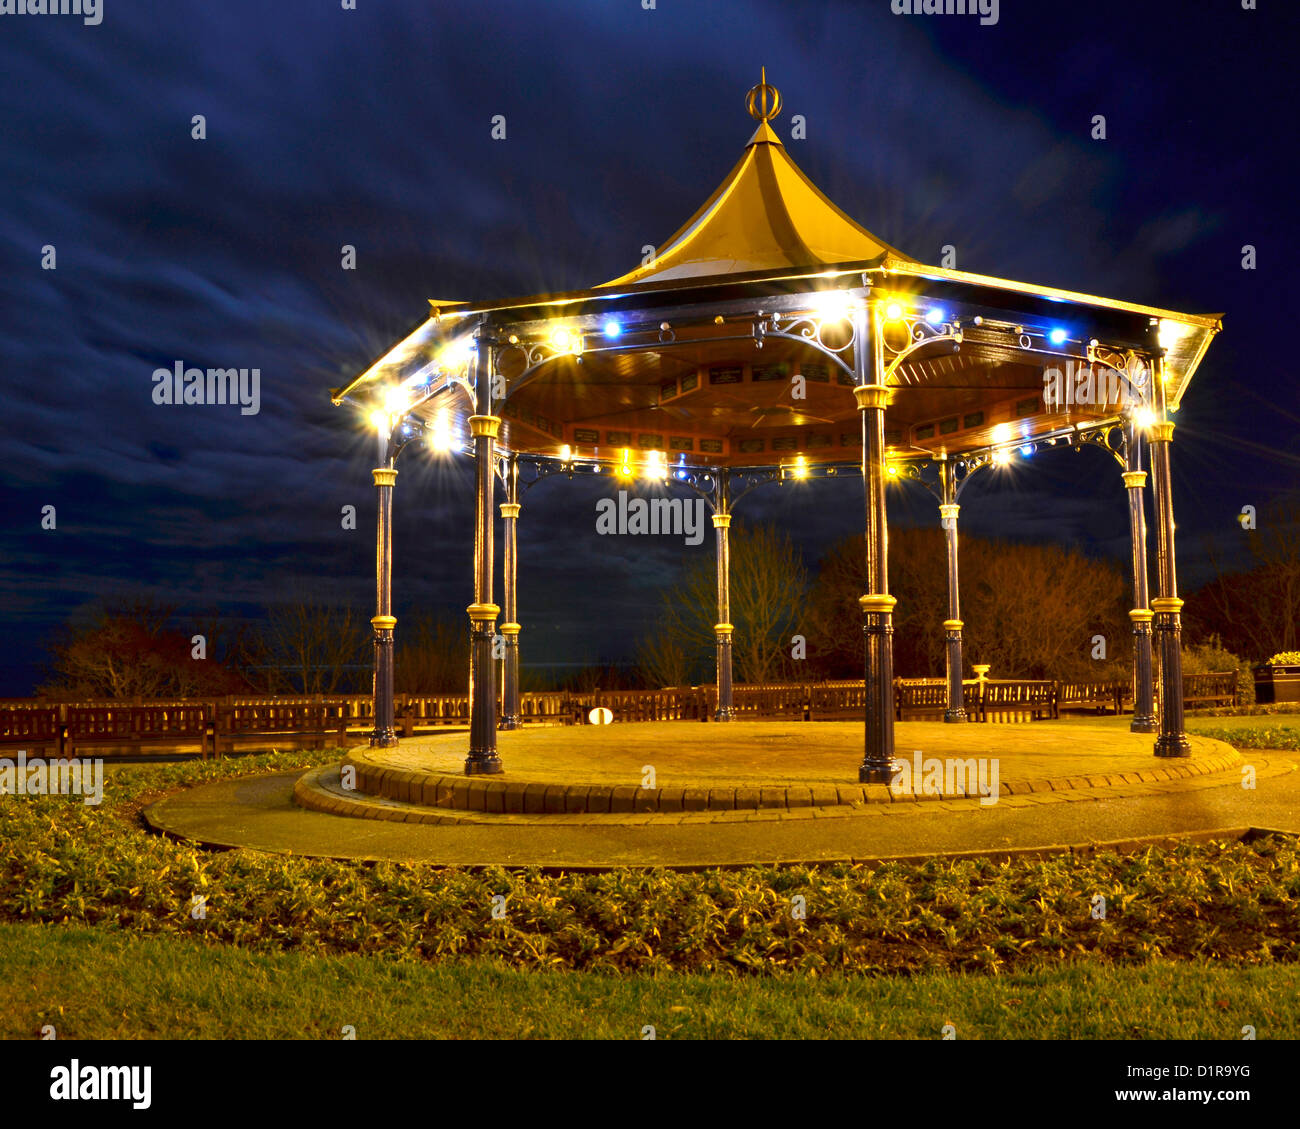 Bandstand in the Crescent gardens Filey North Yorkshire. - Stock Image